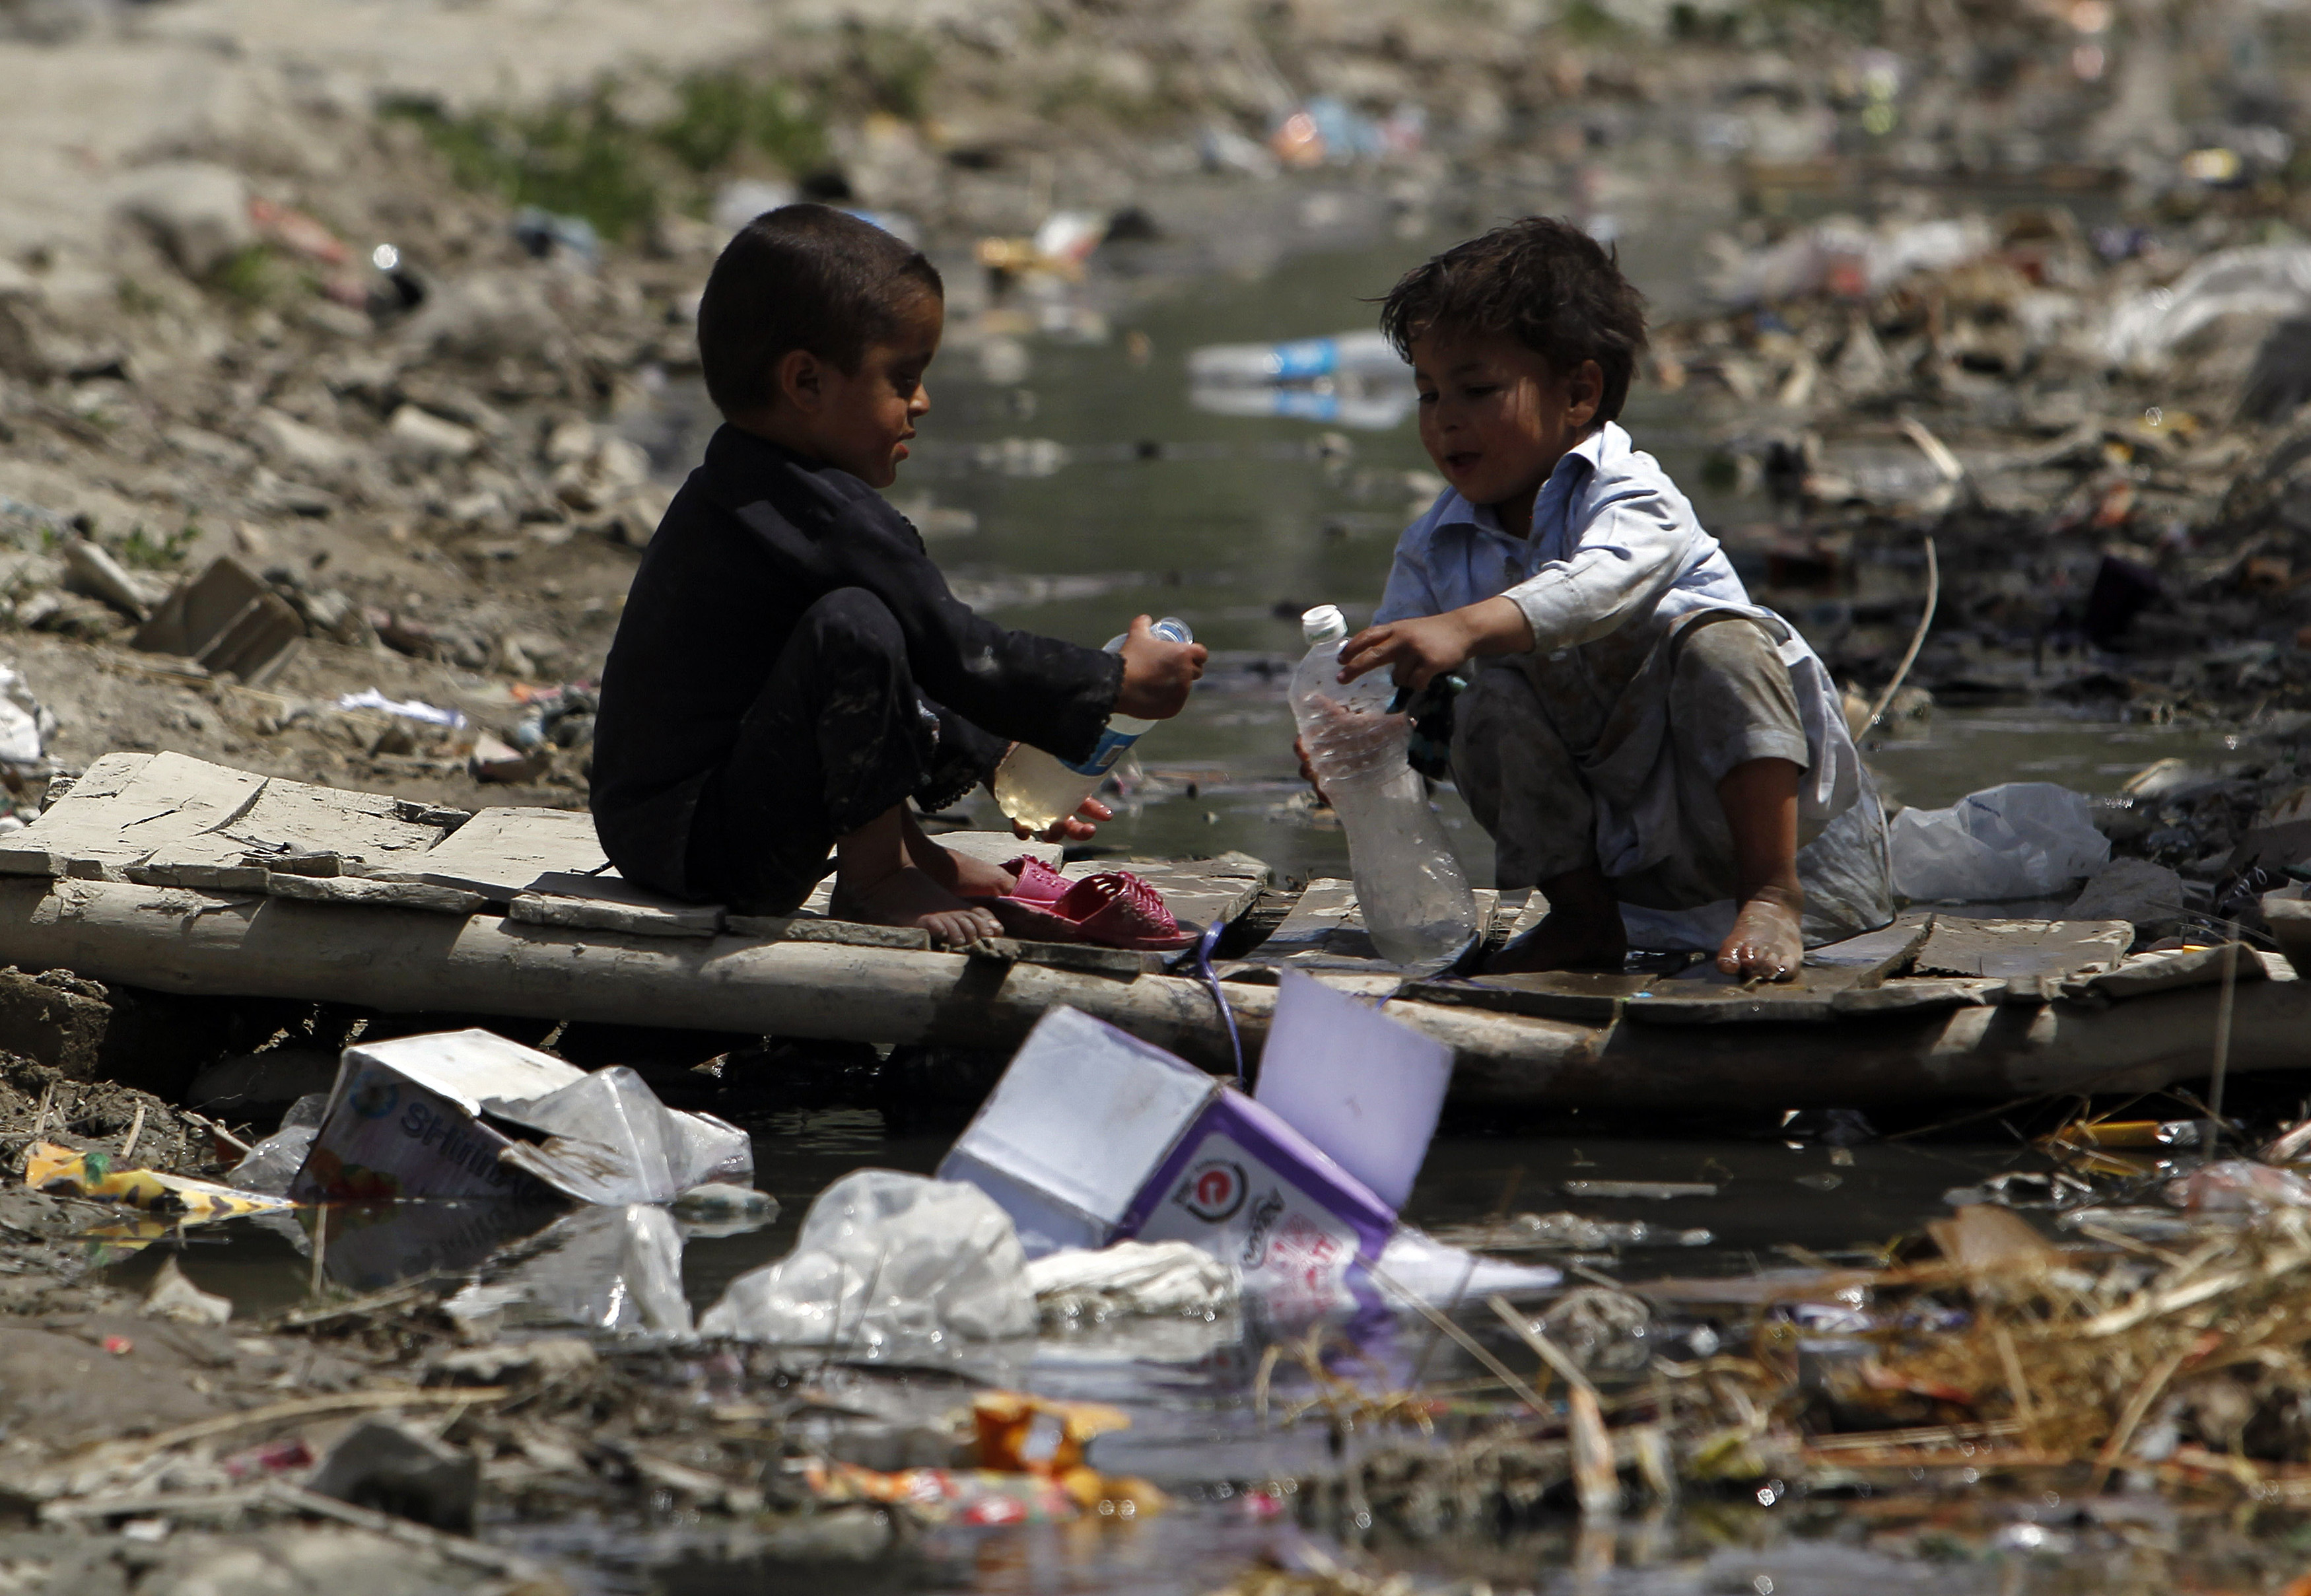 two boys play among some plastic pollution